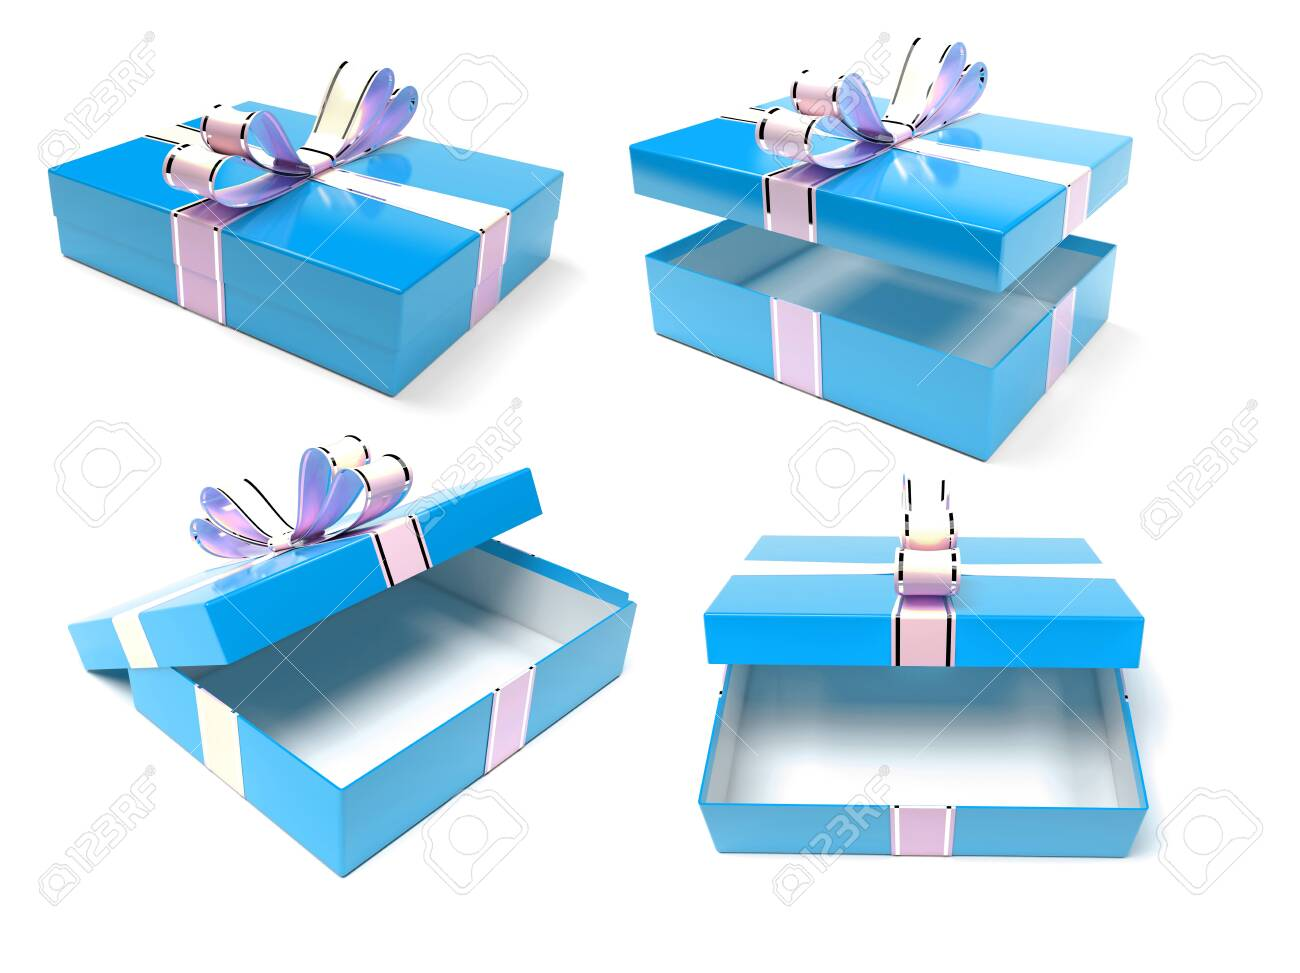 Gift boxes. Blue box with a bow. 3d rendering illustration isolated on white background - 150520813